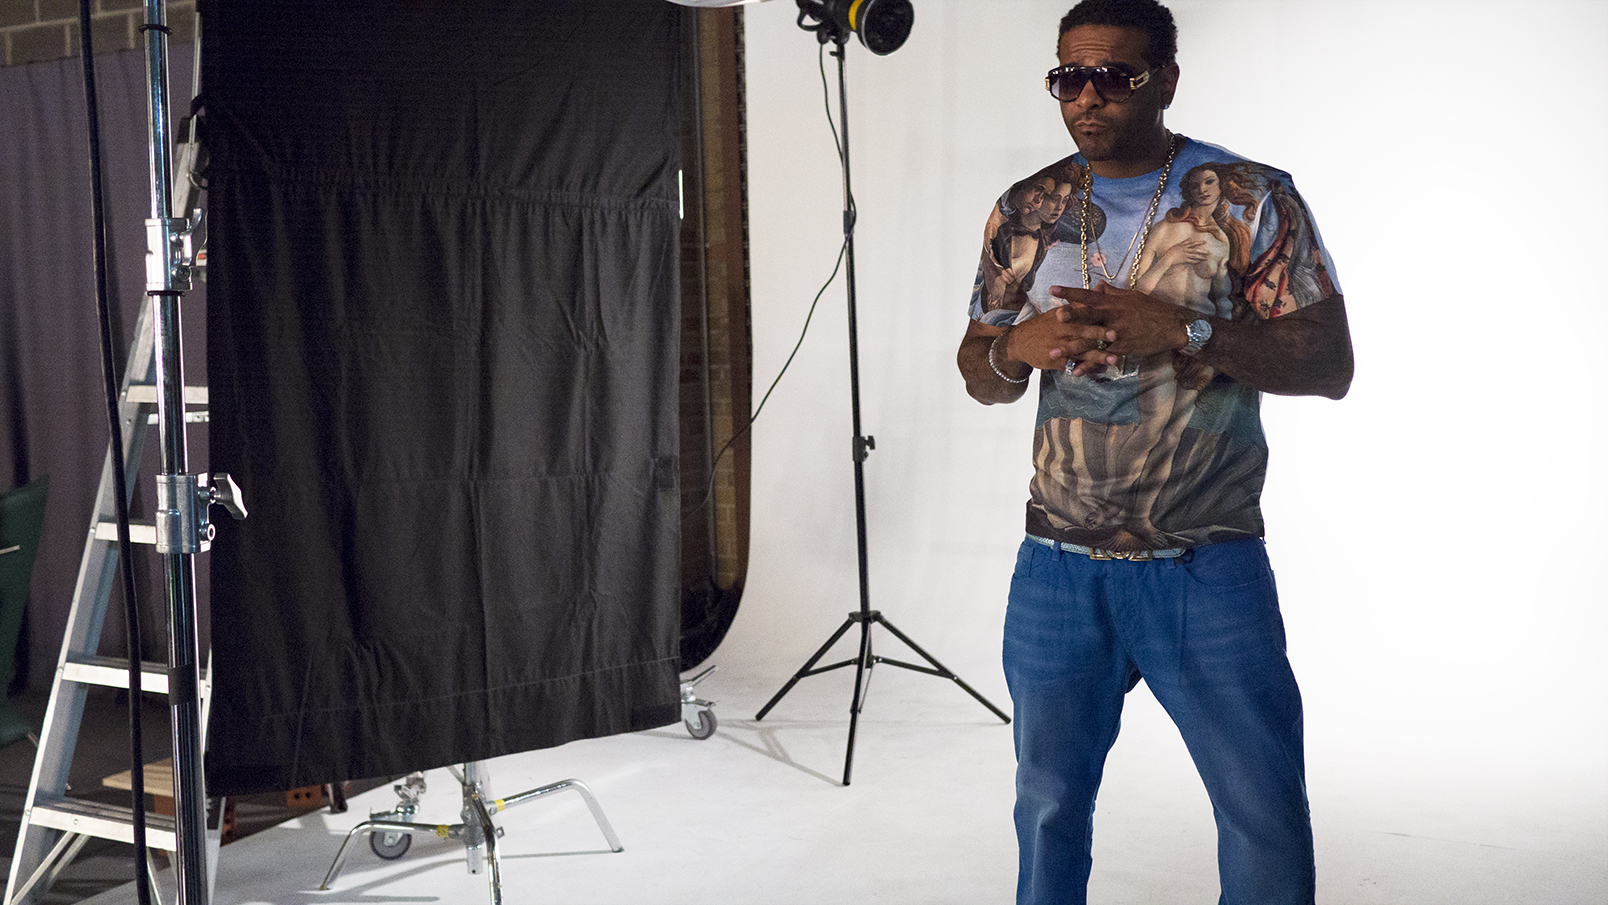 jim-jones-new-vampire-life-shirt-versace-belt